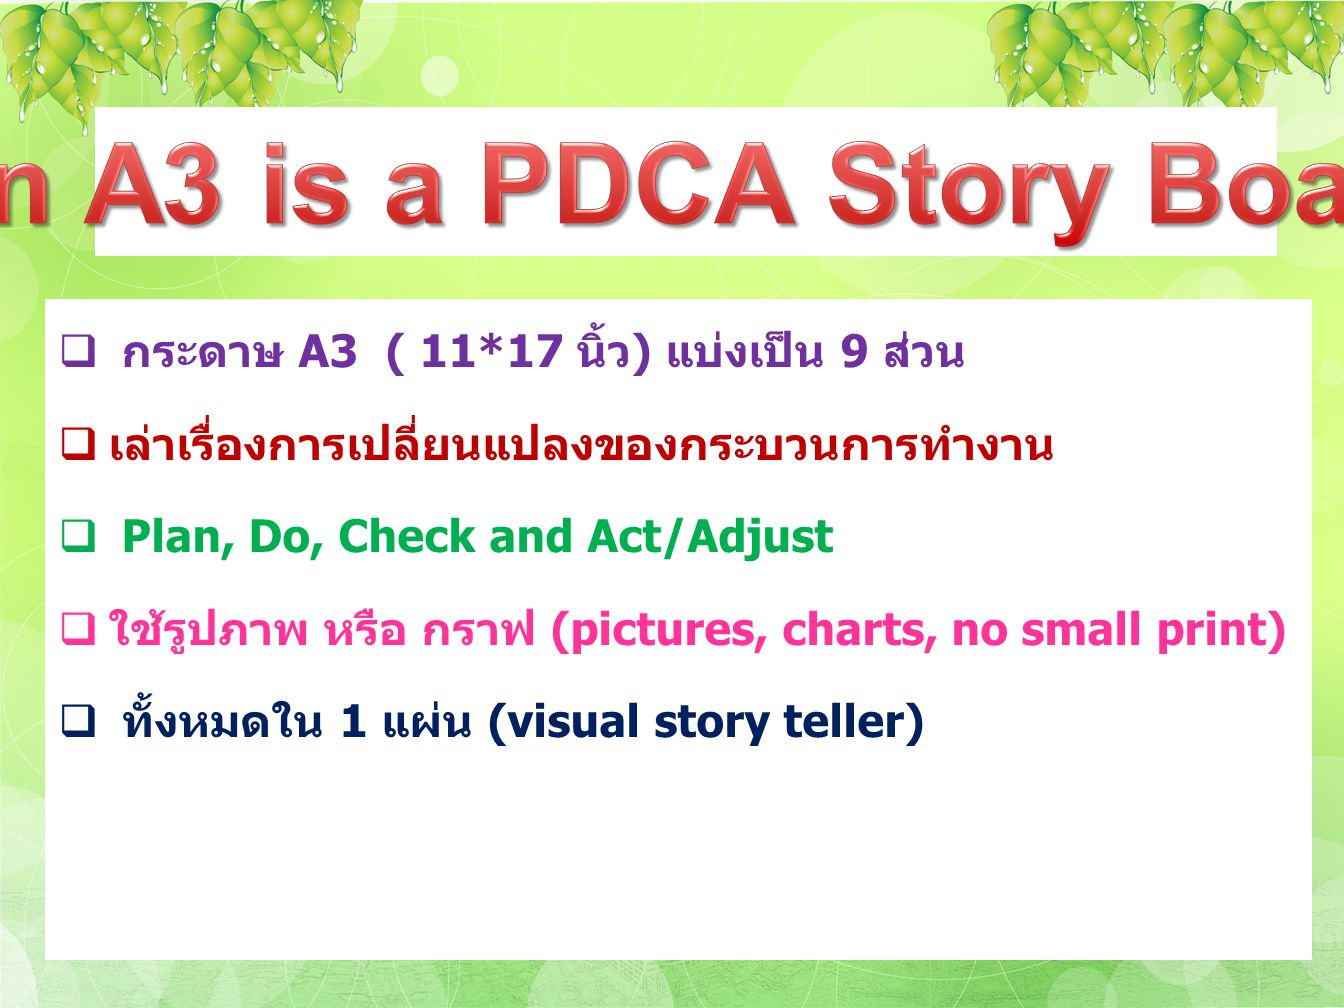 An A3 is a PDCA Story Board